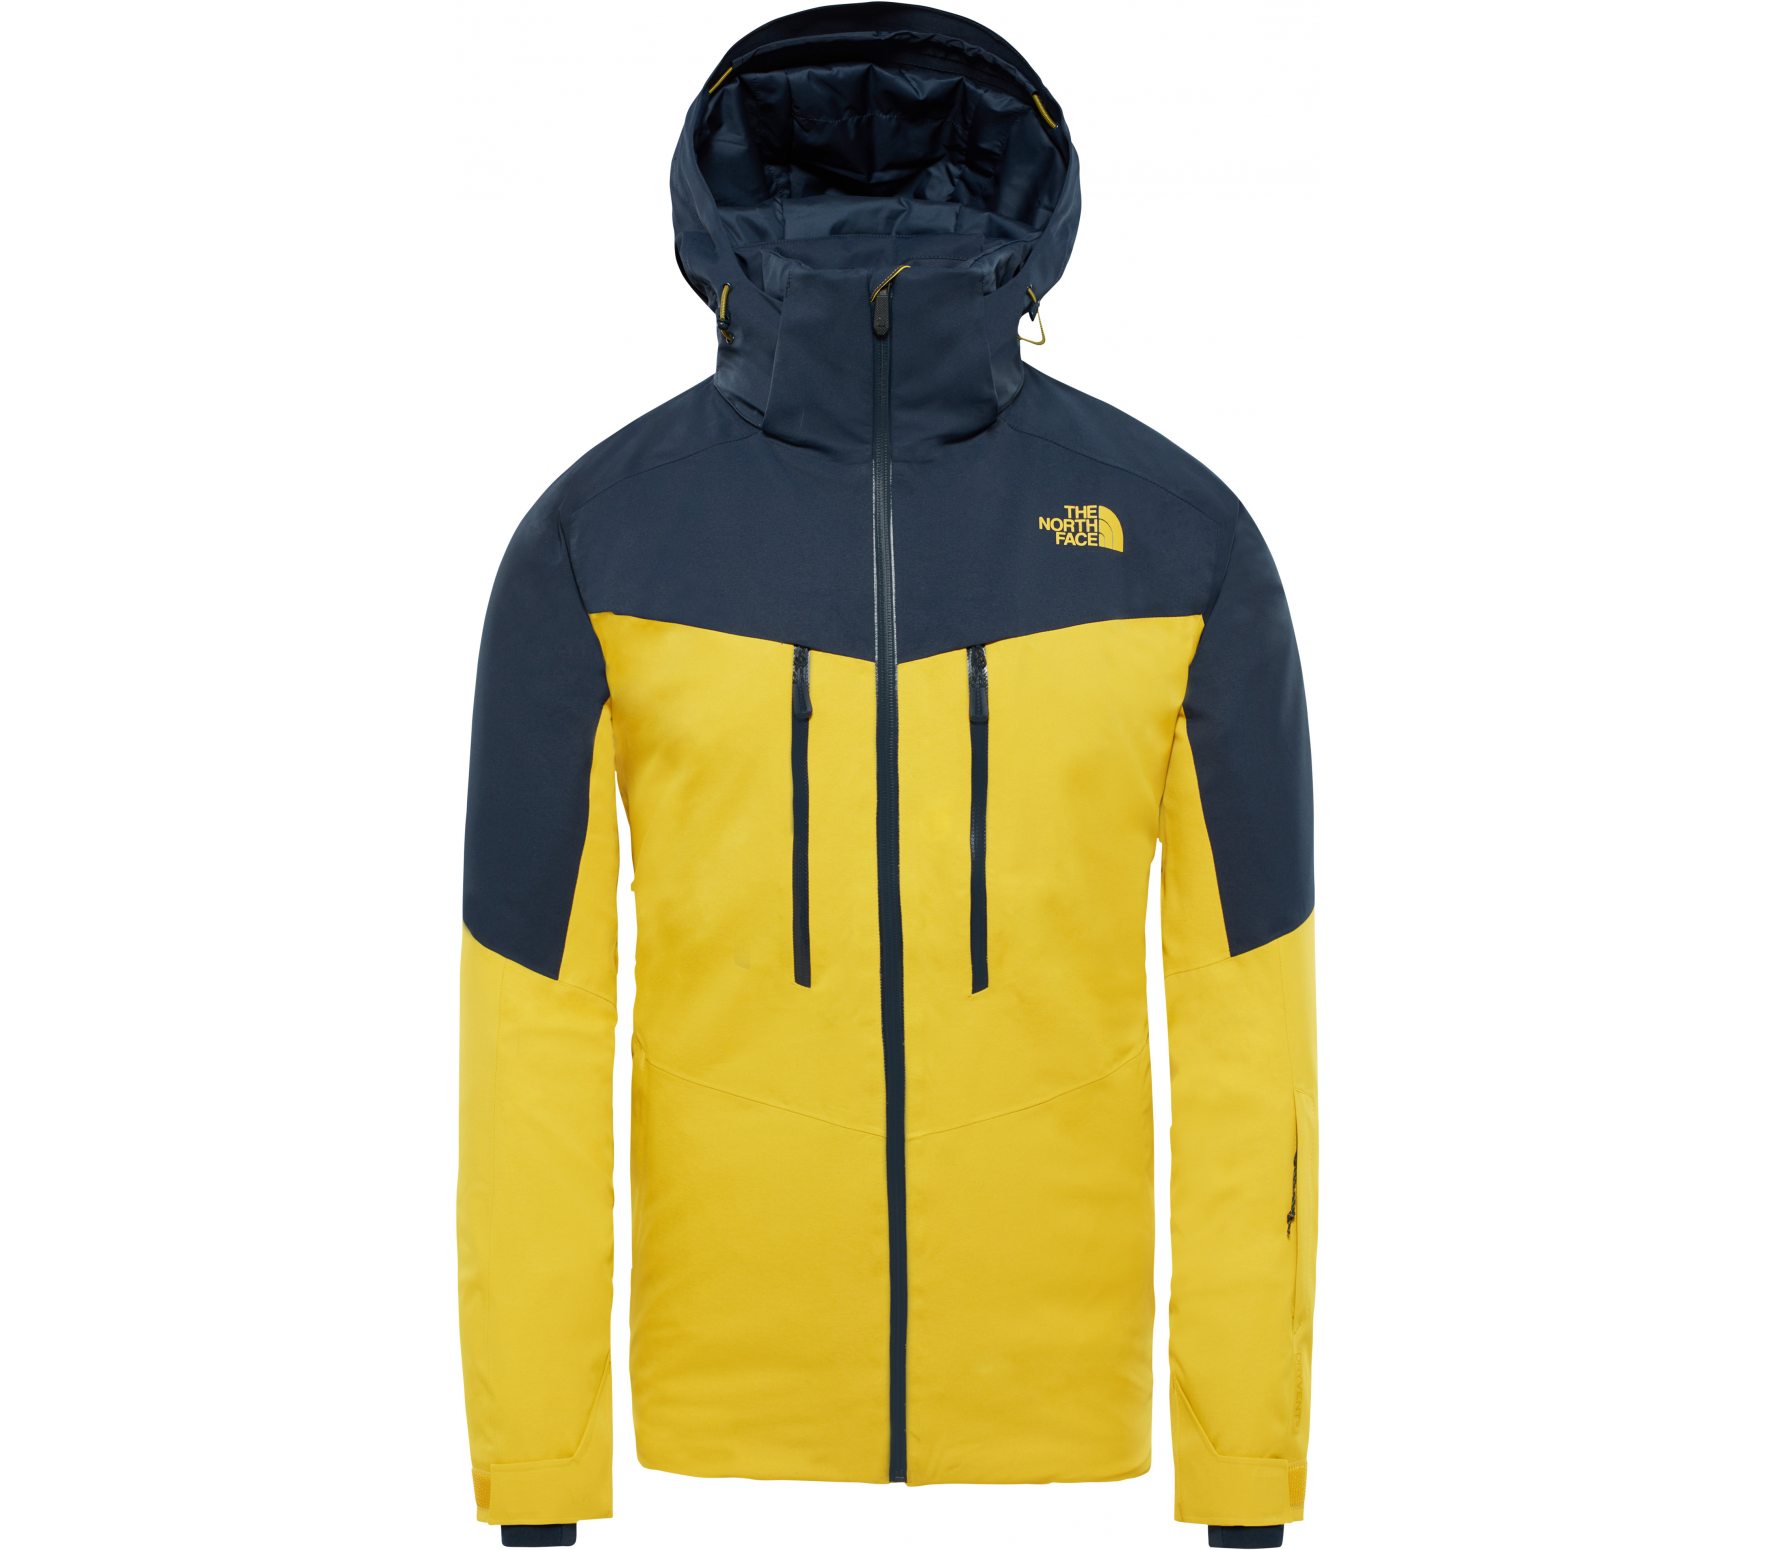 dbaee450c3d170 The North Face - Chakal Herren Skijacke (gelb blau) im Online Shop ...